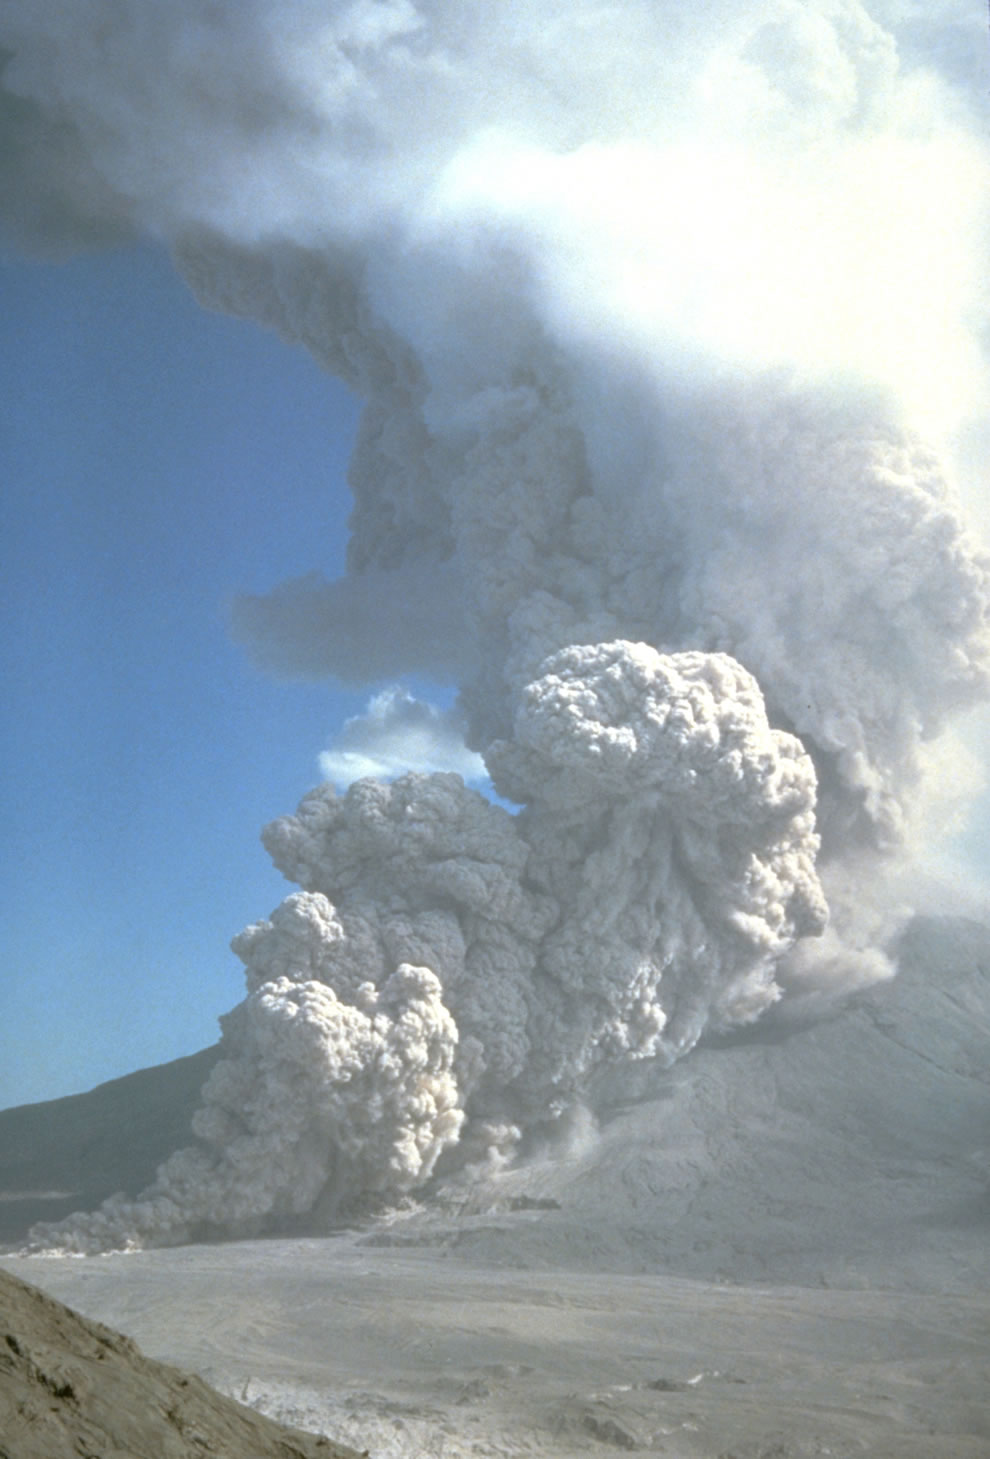 a pyroclastic flow from the August 7, 1980 eruption stretches from Mount St. Helens' crater to the valley floor below